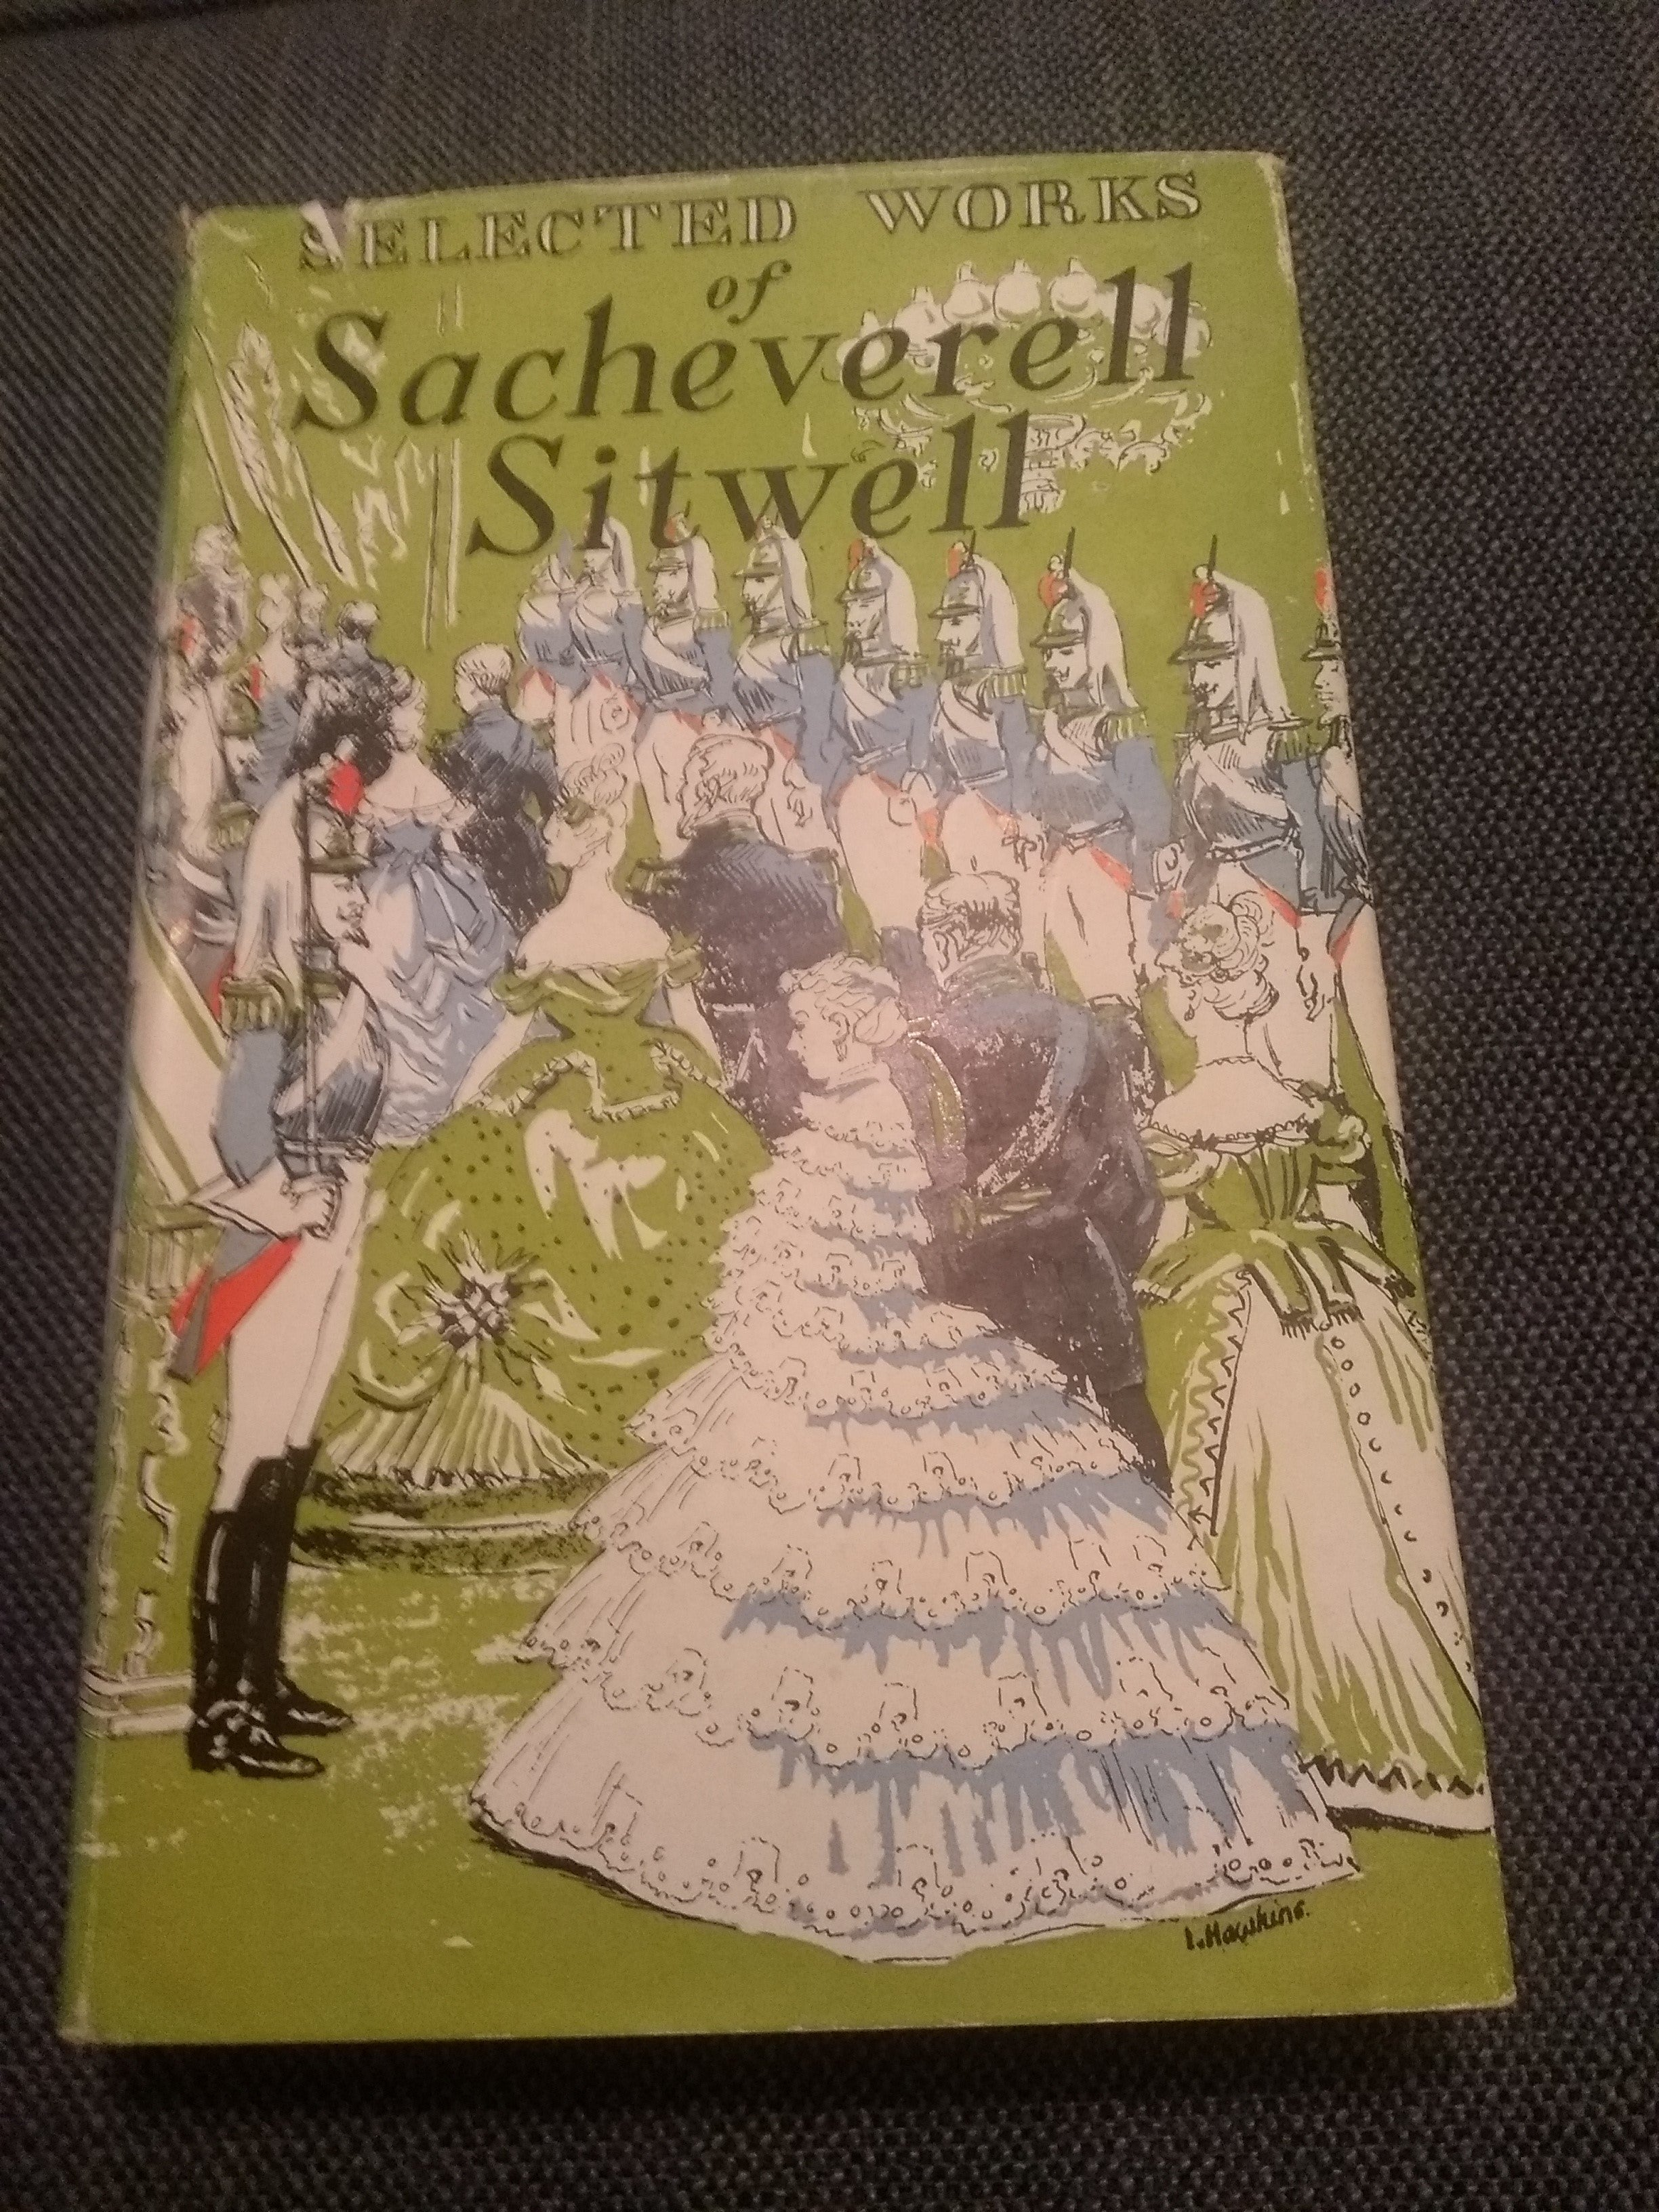 Selected Works of Sacheverell Sitwell, by Sacheverell Sitwell